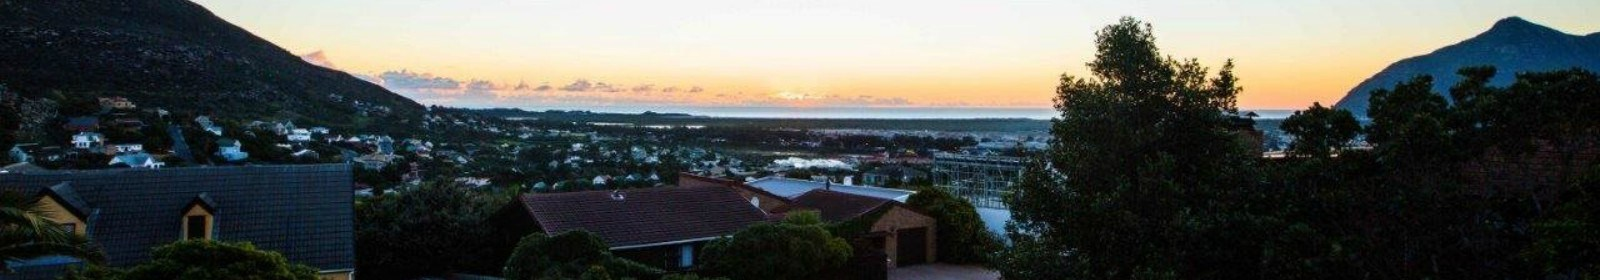 Infrastructure upgrades set to boost False Bay property